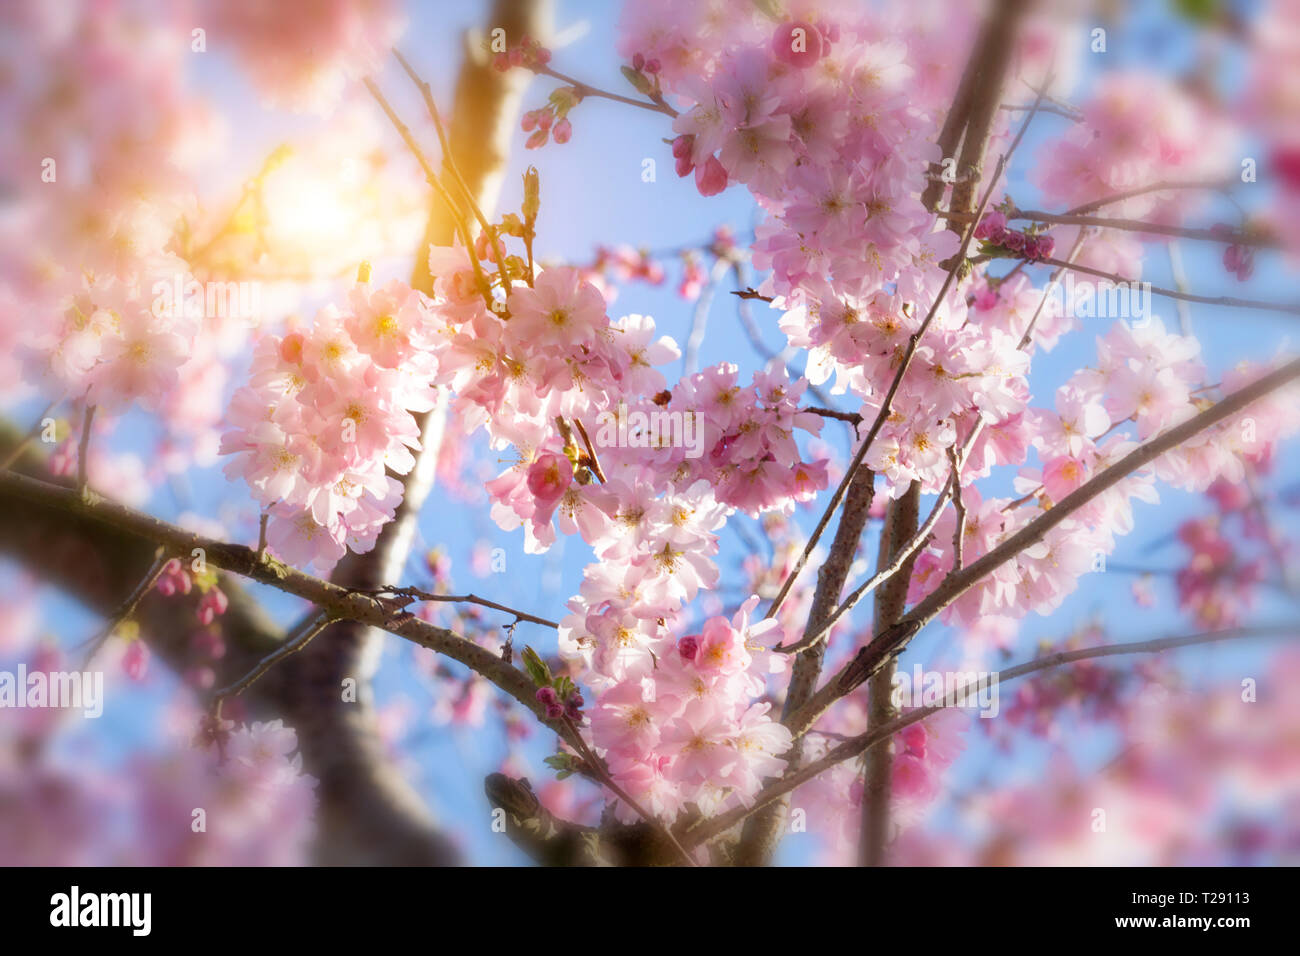 Cherry blossoms over blue sky background Stock Photo